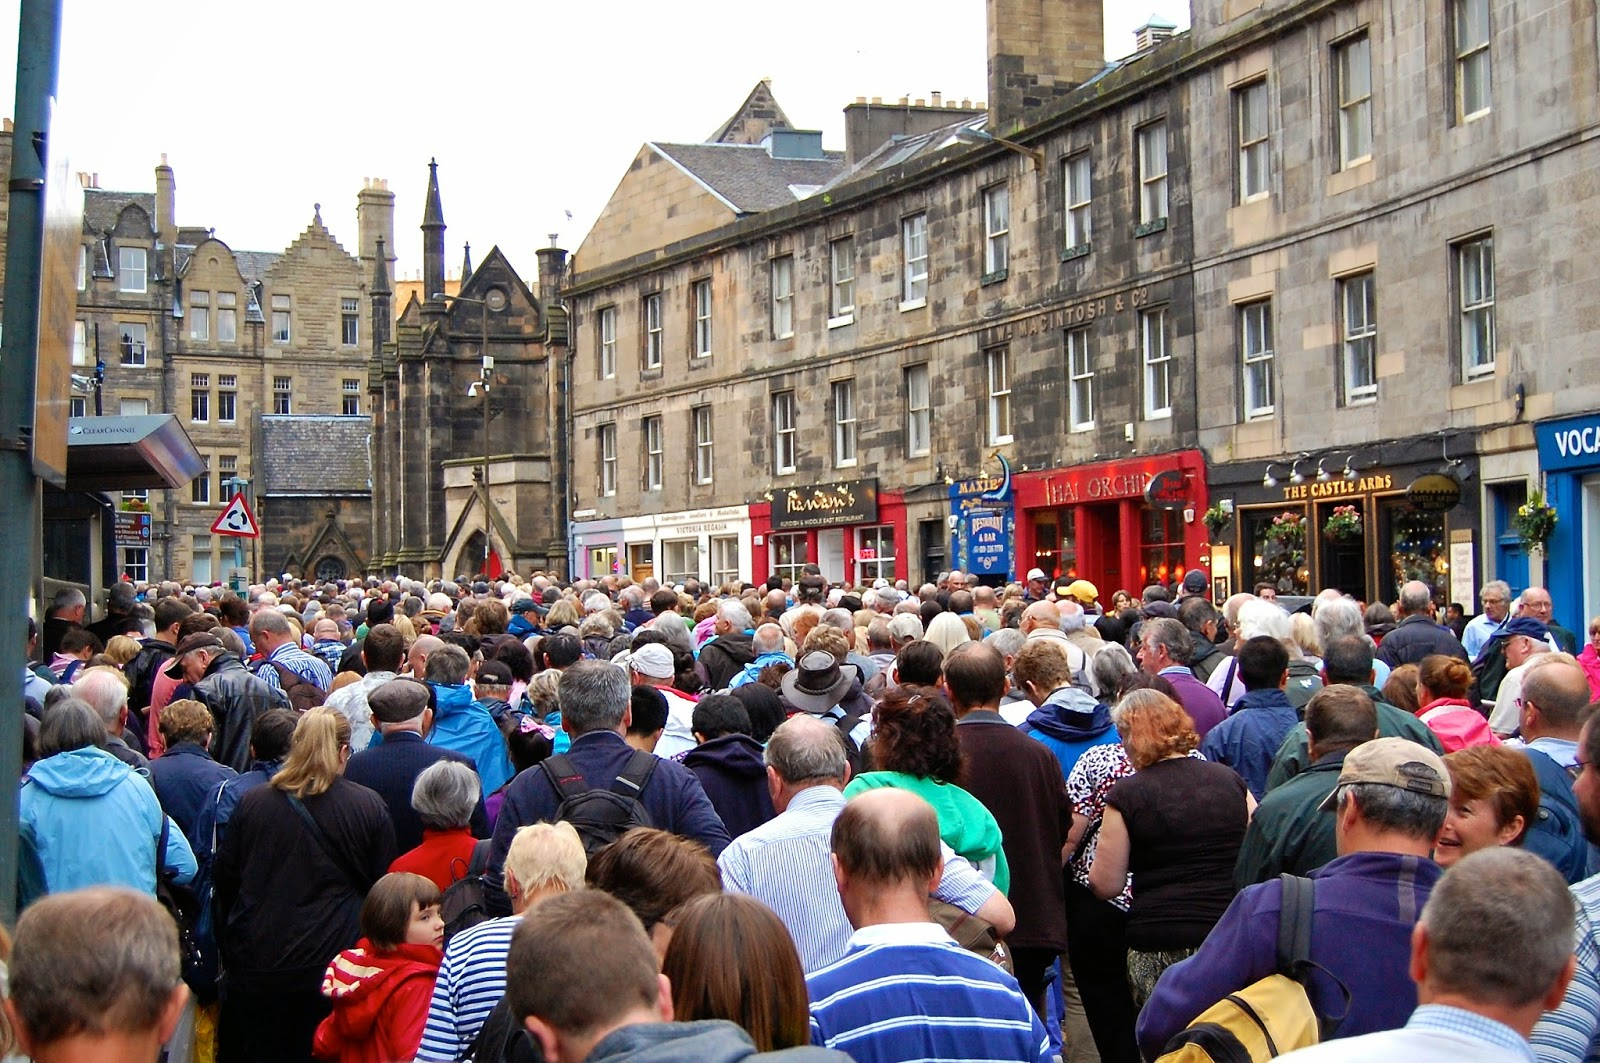 Queue for Royal Edinburgh Military Tattoo